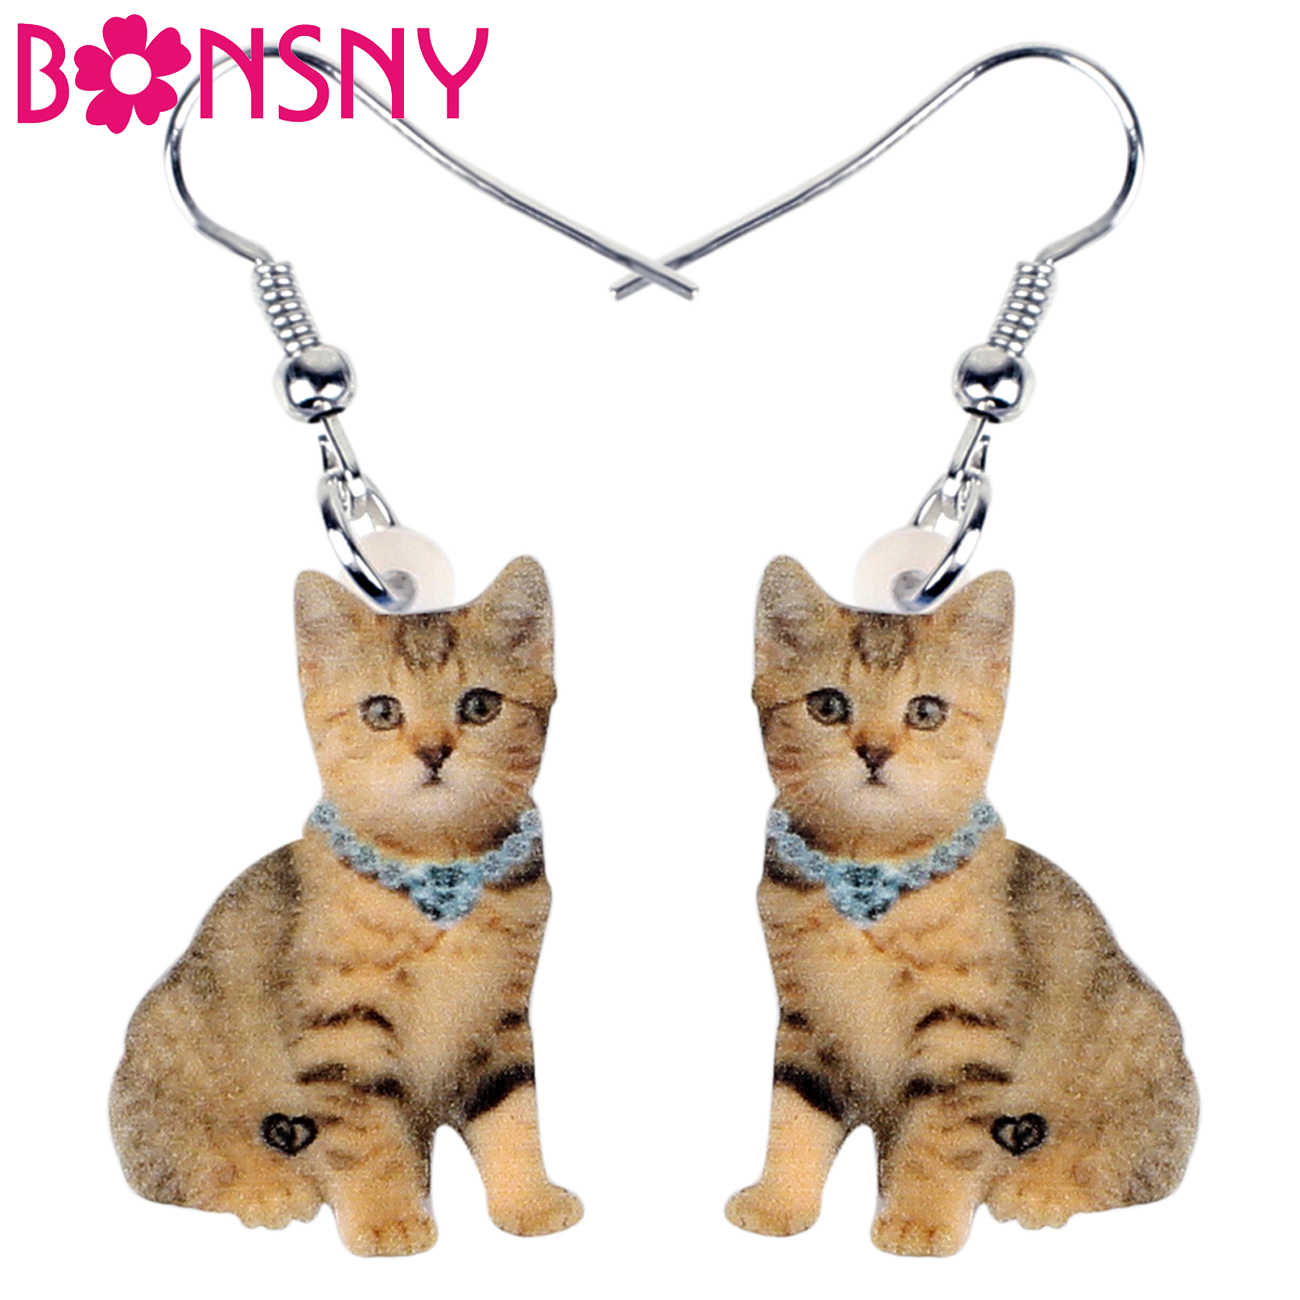 Bonsny Acrylic Cute Orange Stripe Cat Earrings Dangle Drop Unique Jewelry For Women Girls Pet Lovers Charms Lots Gift Decoration